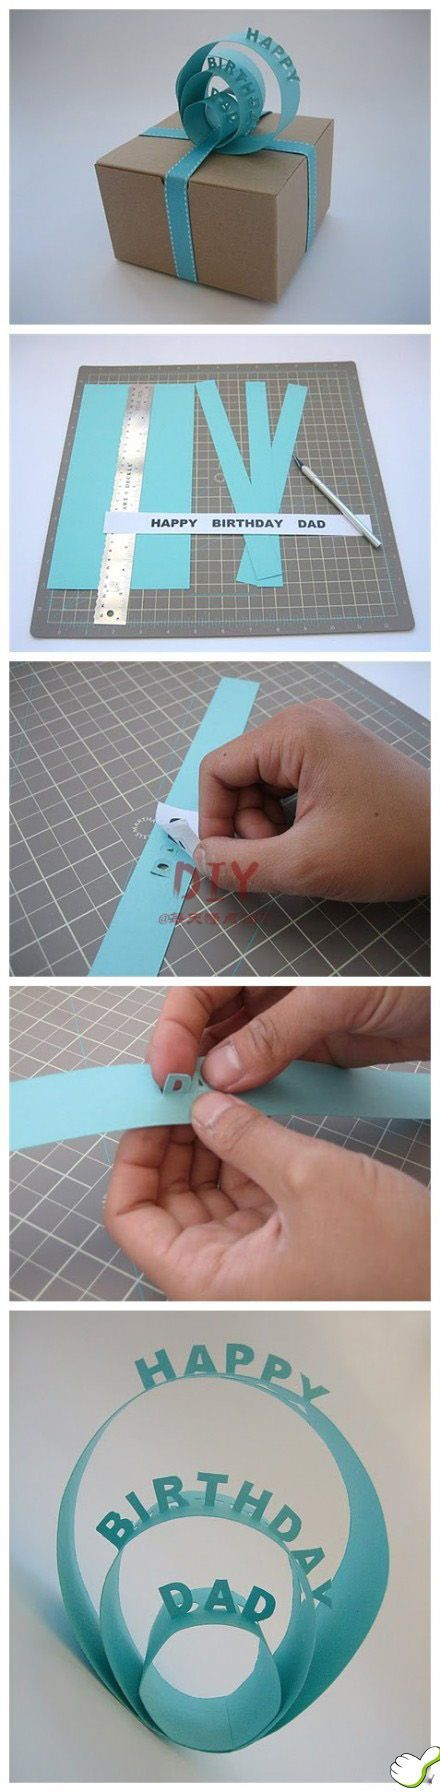 This has silhouette written all over it!  Super cool gift tag idea. http://www.giftideascorner.com/christmas-gifts-dad